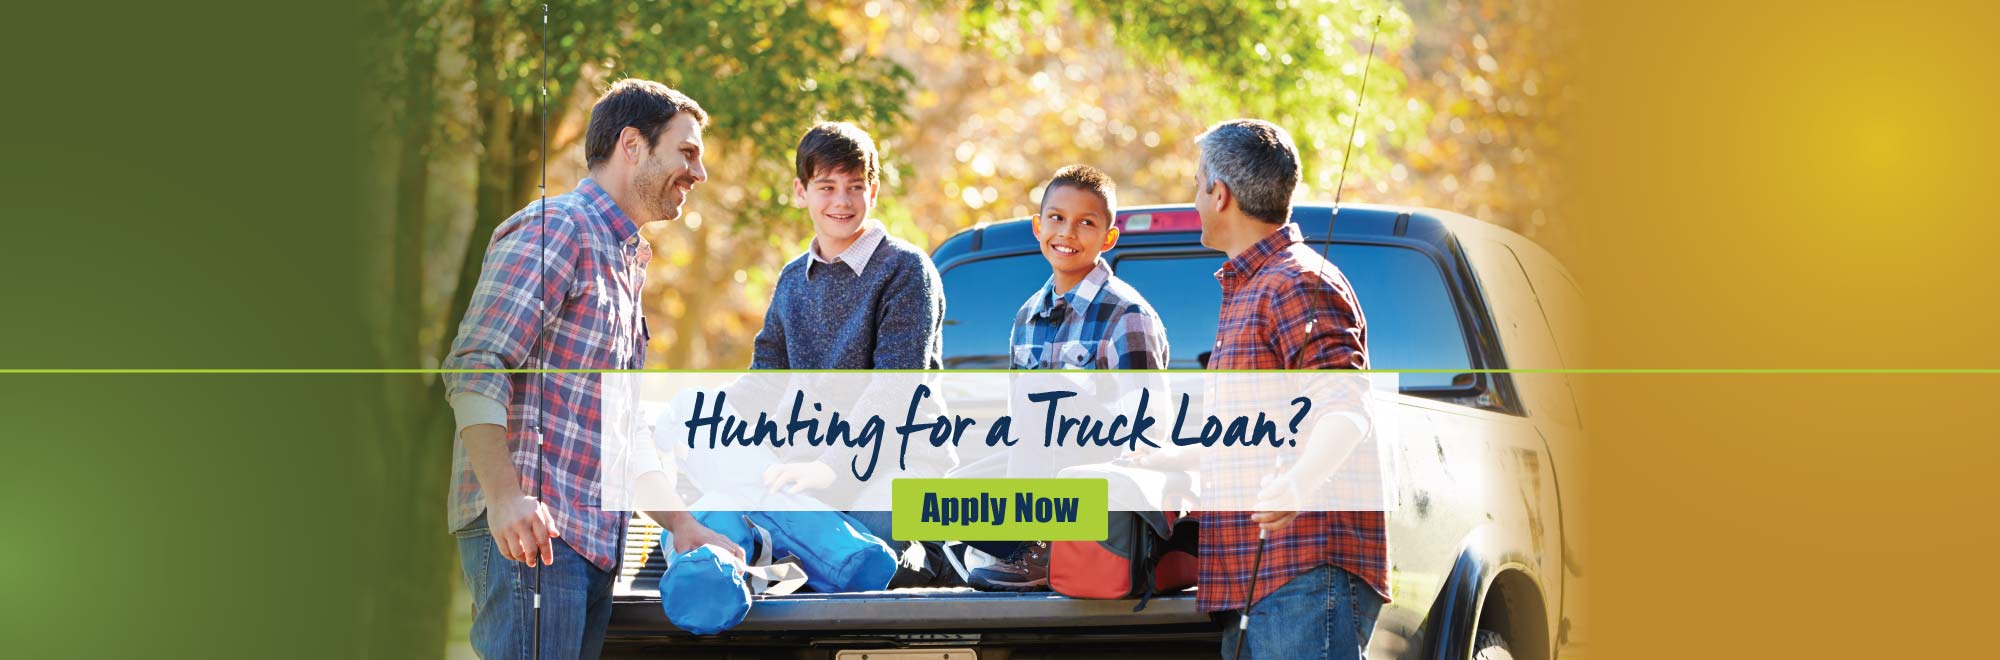 Hunting for a truck loan?